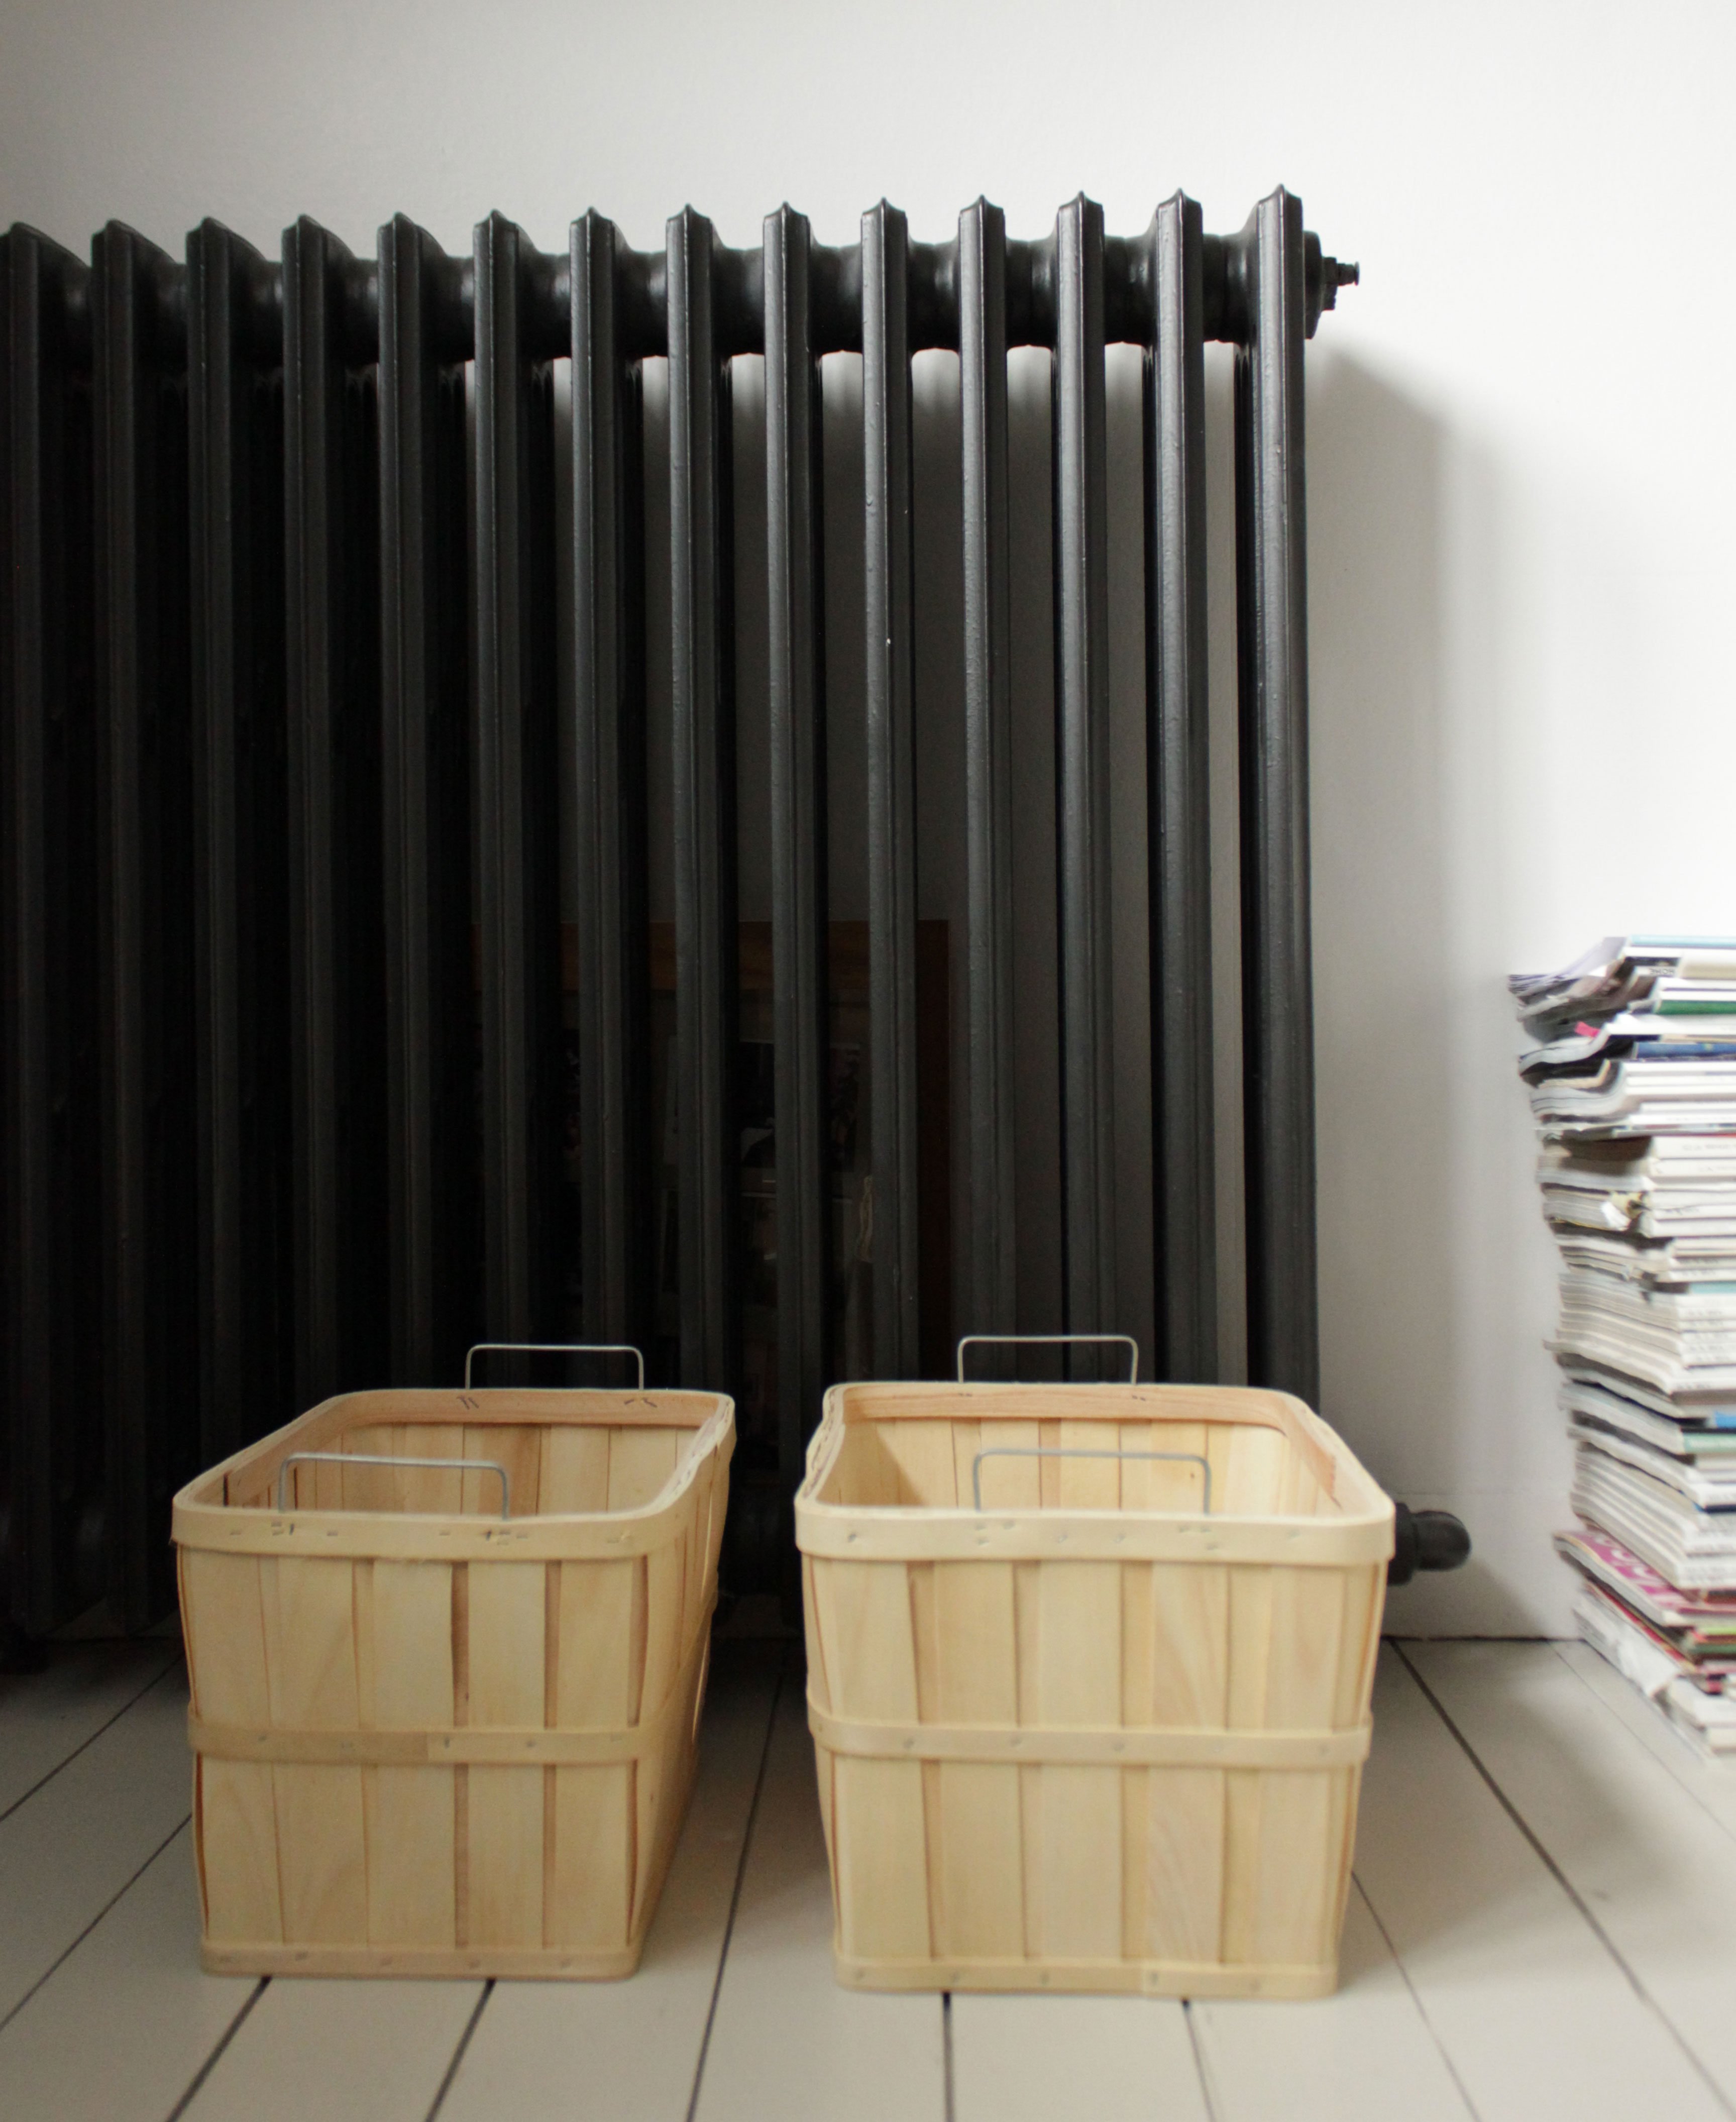 panier bois bouleau scandinave house doctor fu0515 a. Black Bedroom Furniture Sets. Home Design Ideas